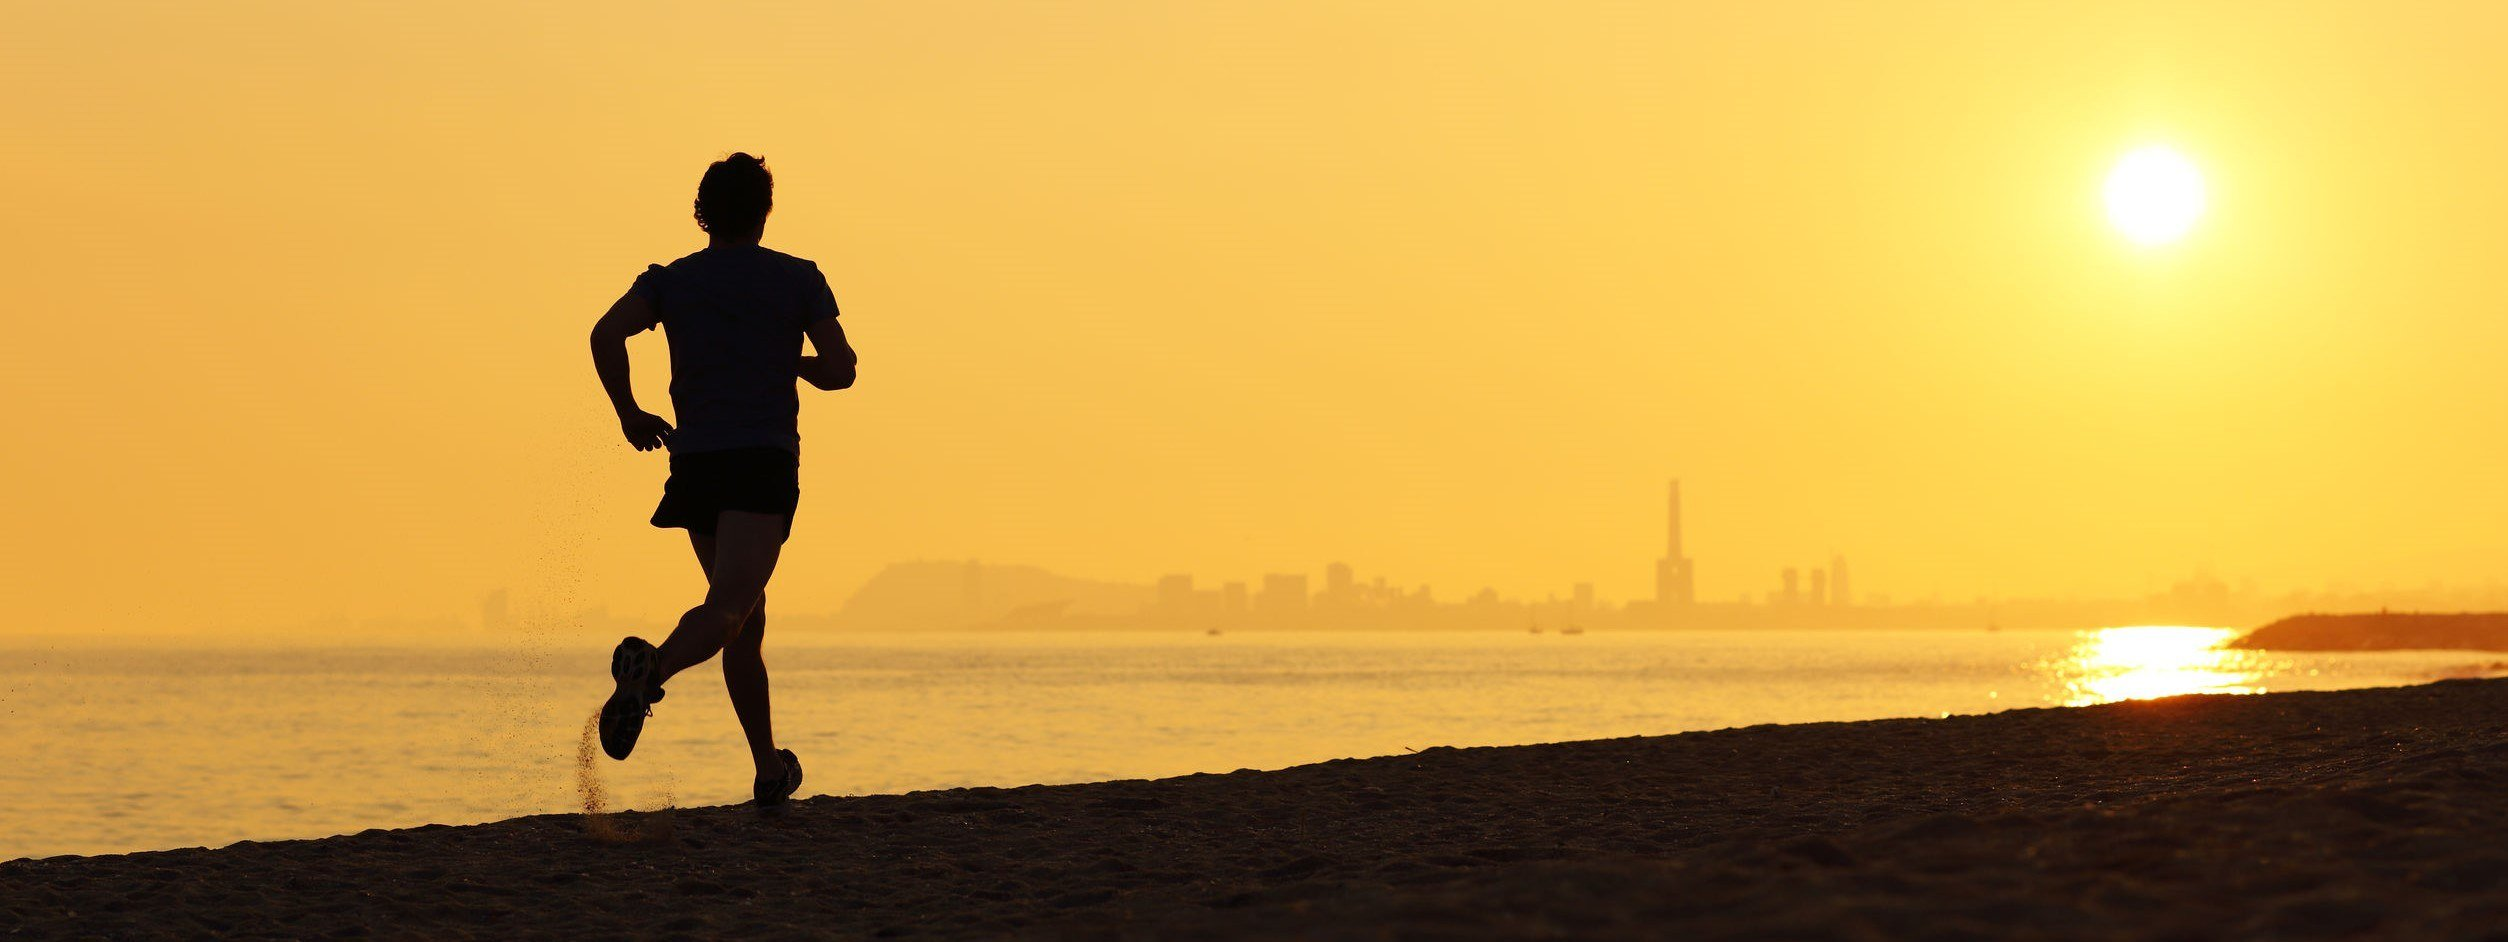 Jogger silhouette running on the beach at sunset with the horizon in the background